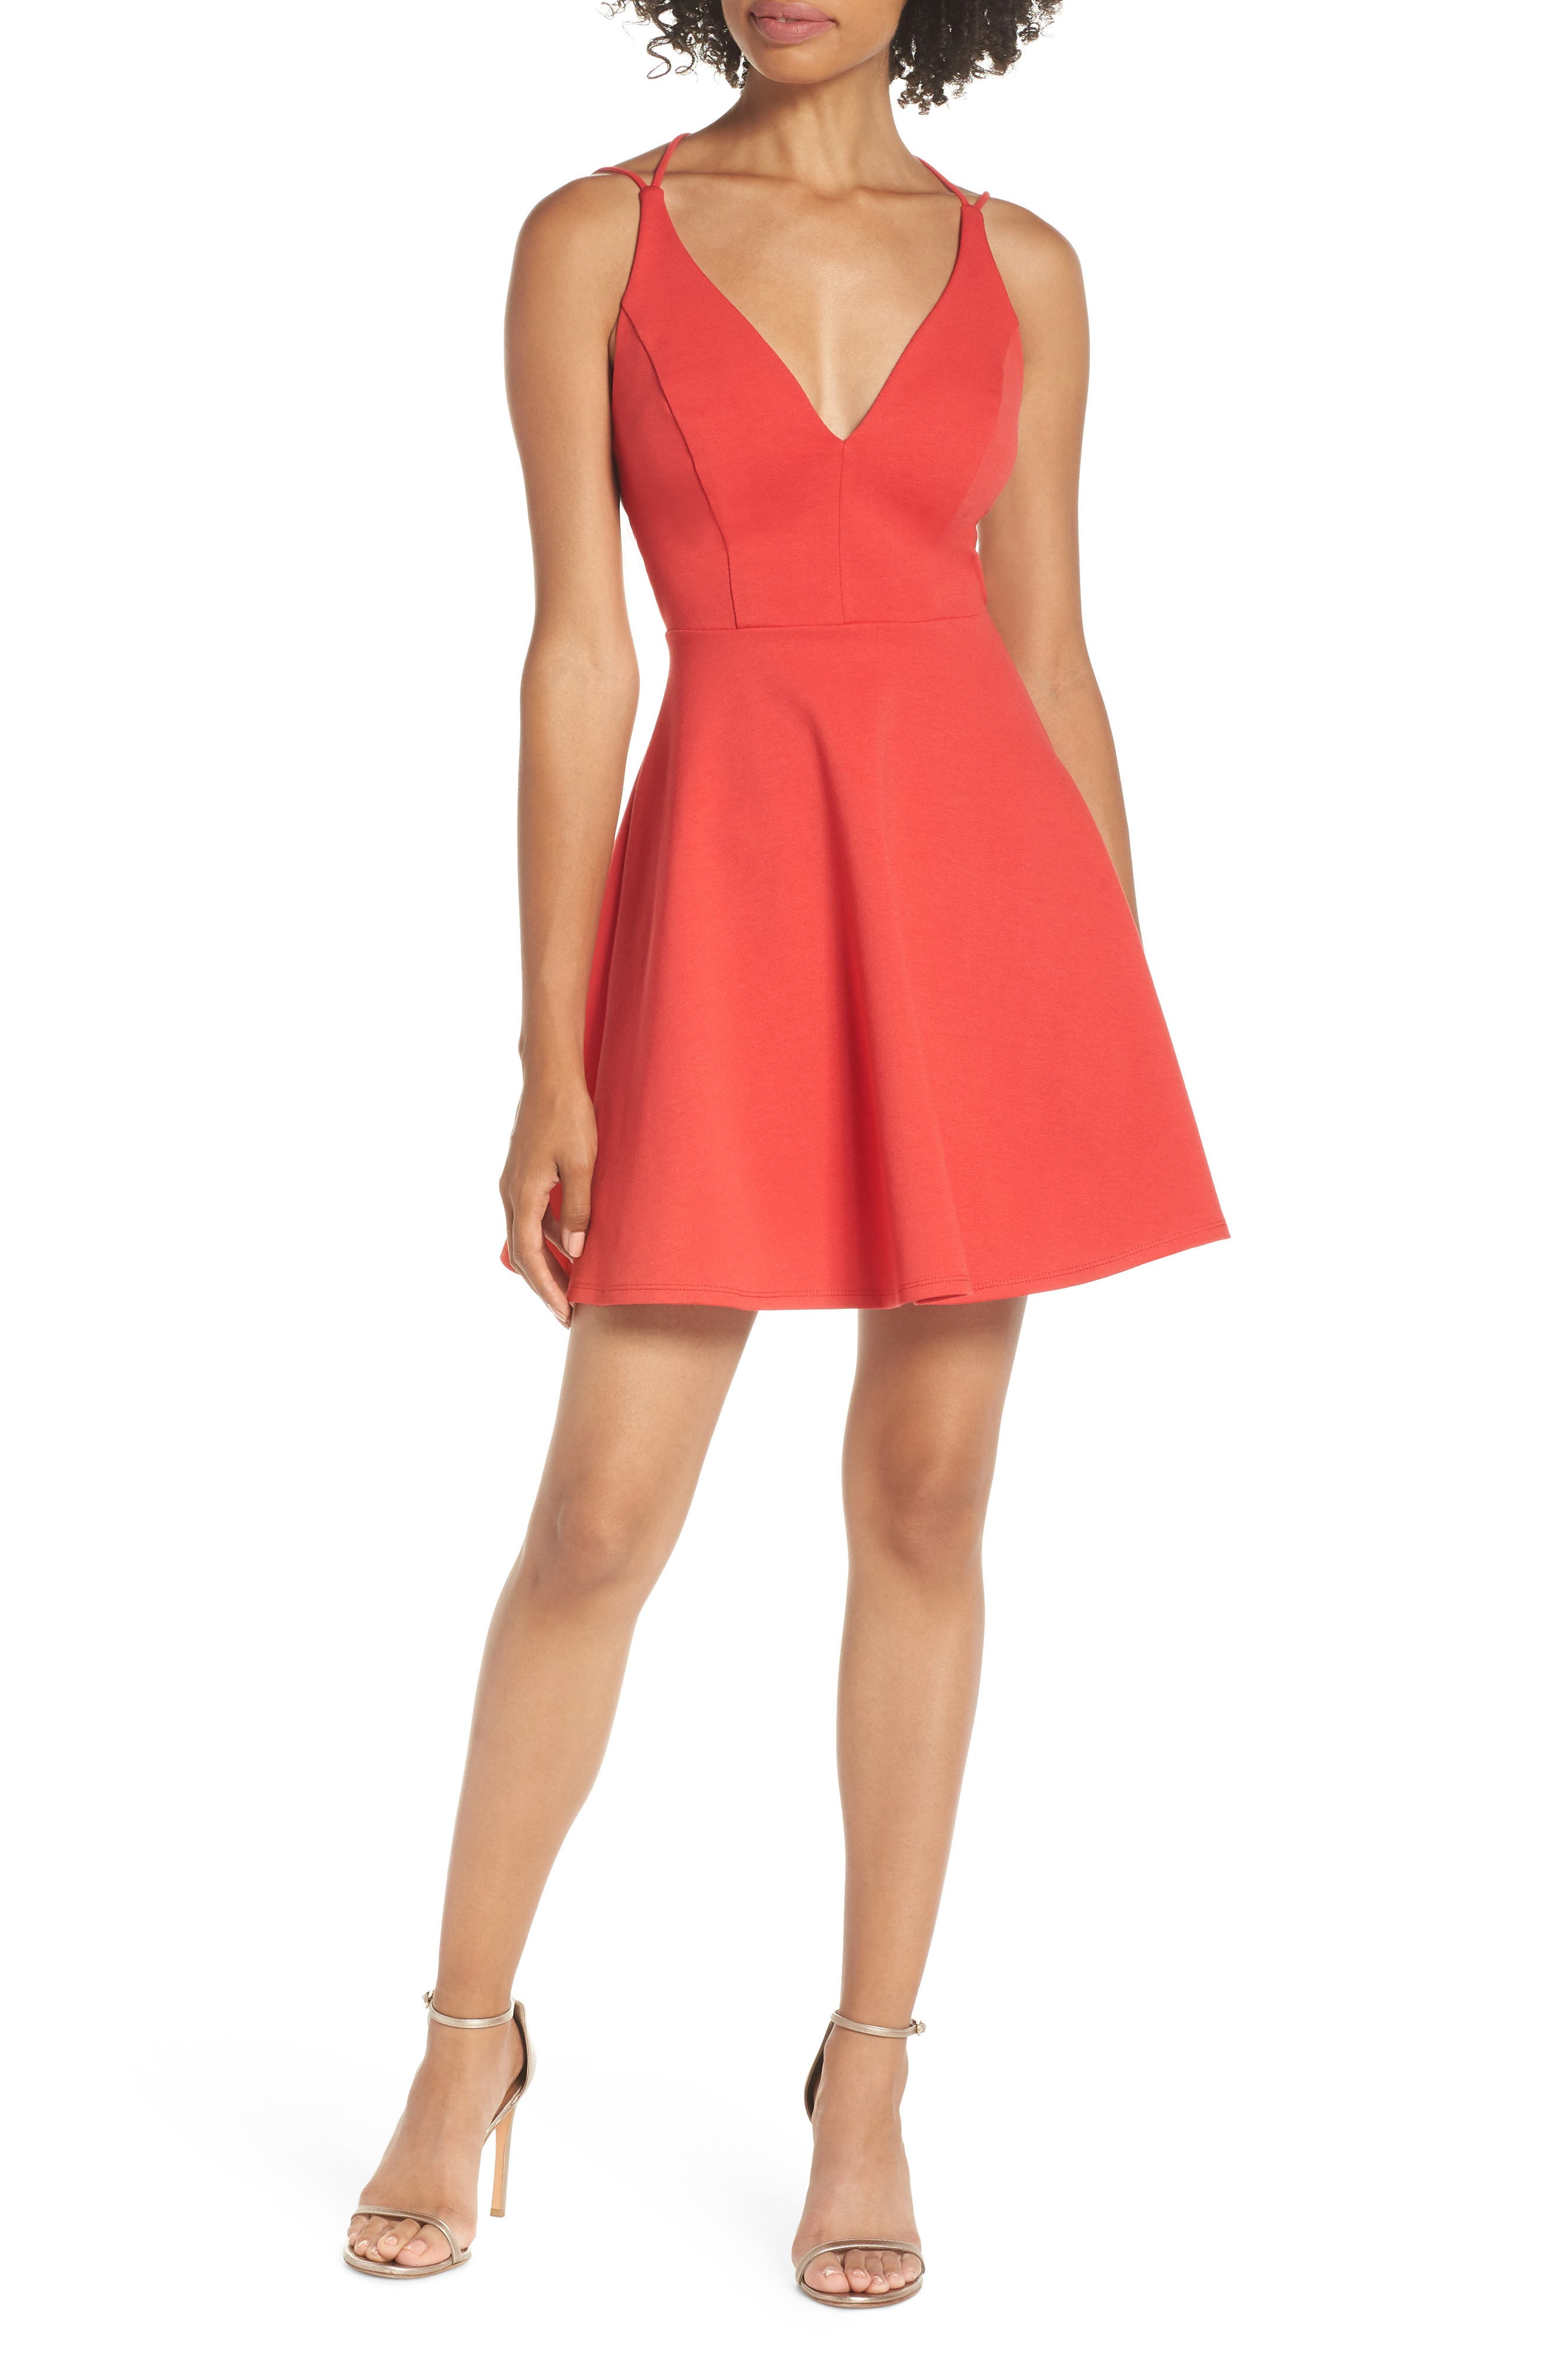 Lulus Believe In Love Strappy Back Skater Dress, Red